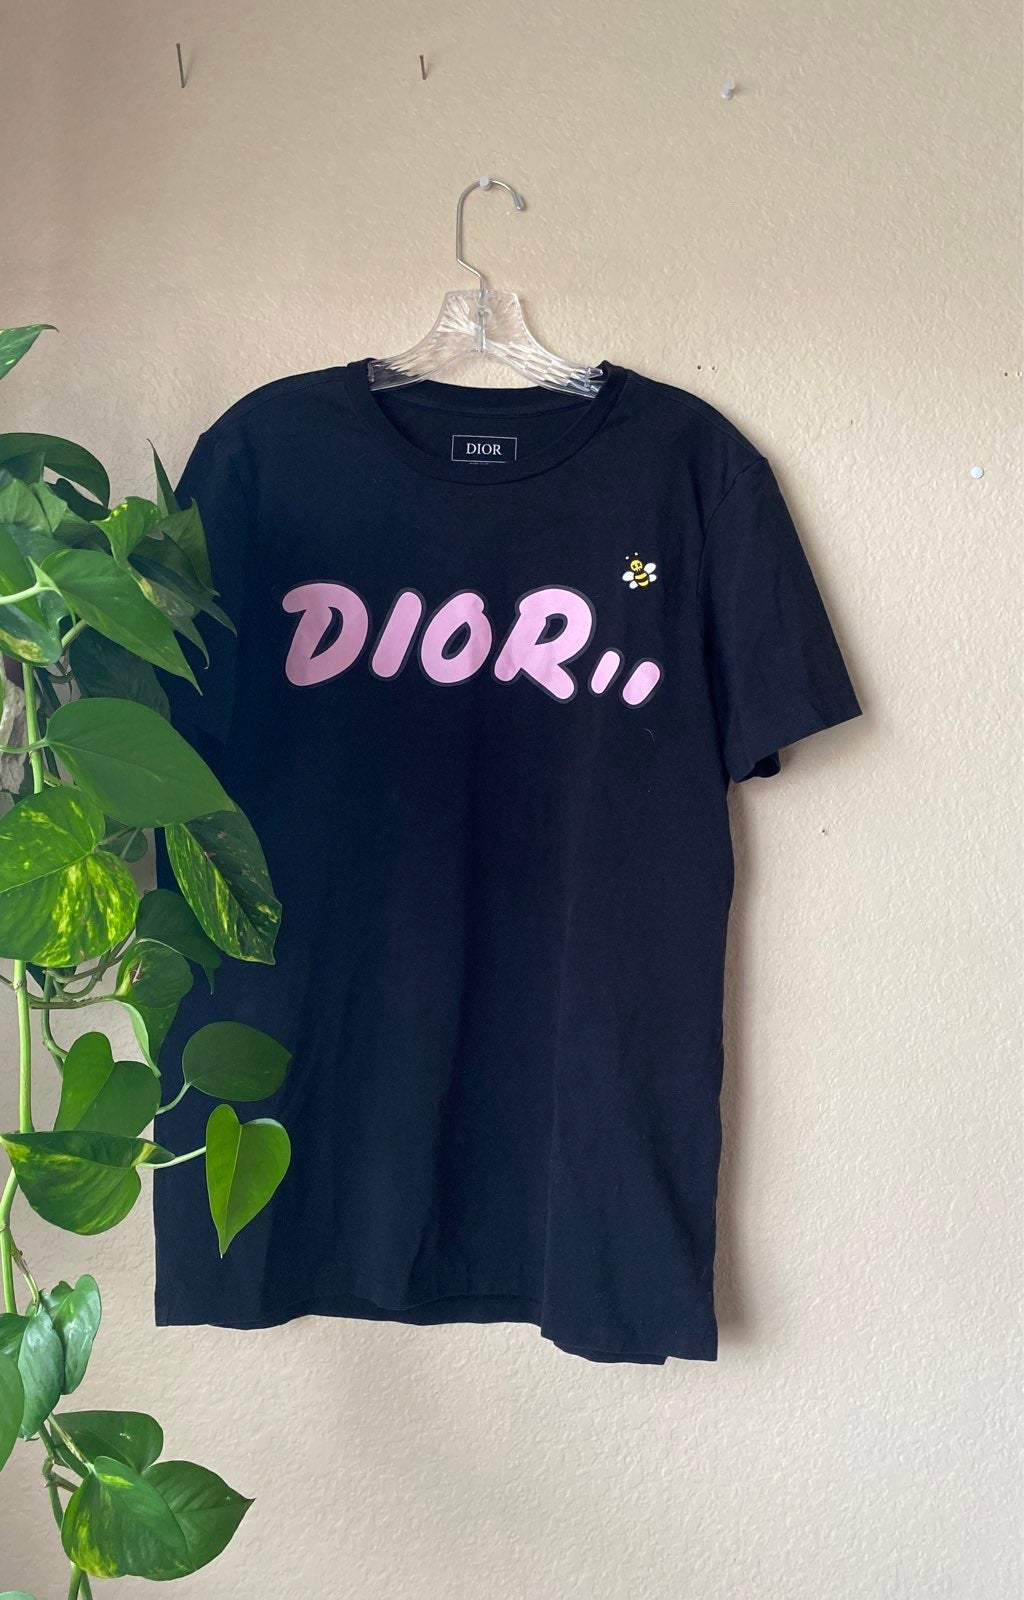 Dior t shirt possible dupe